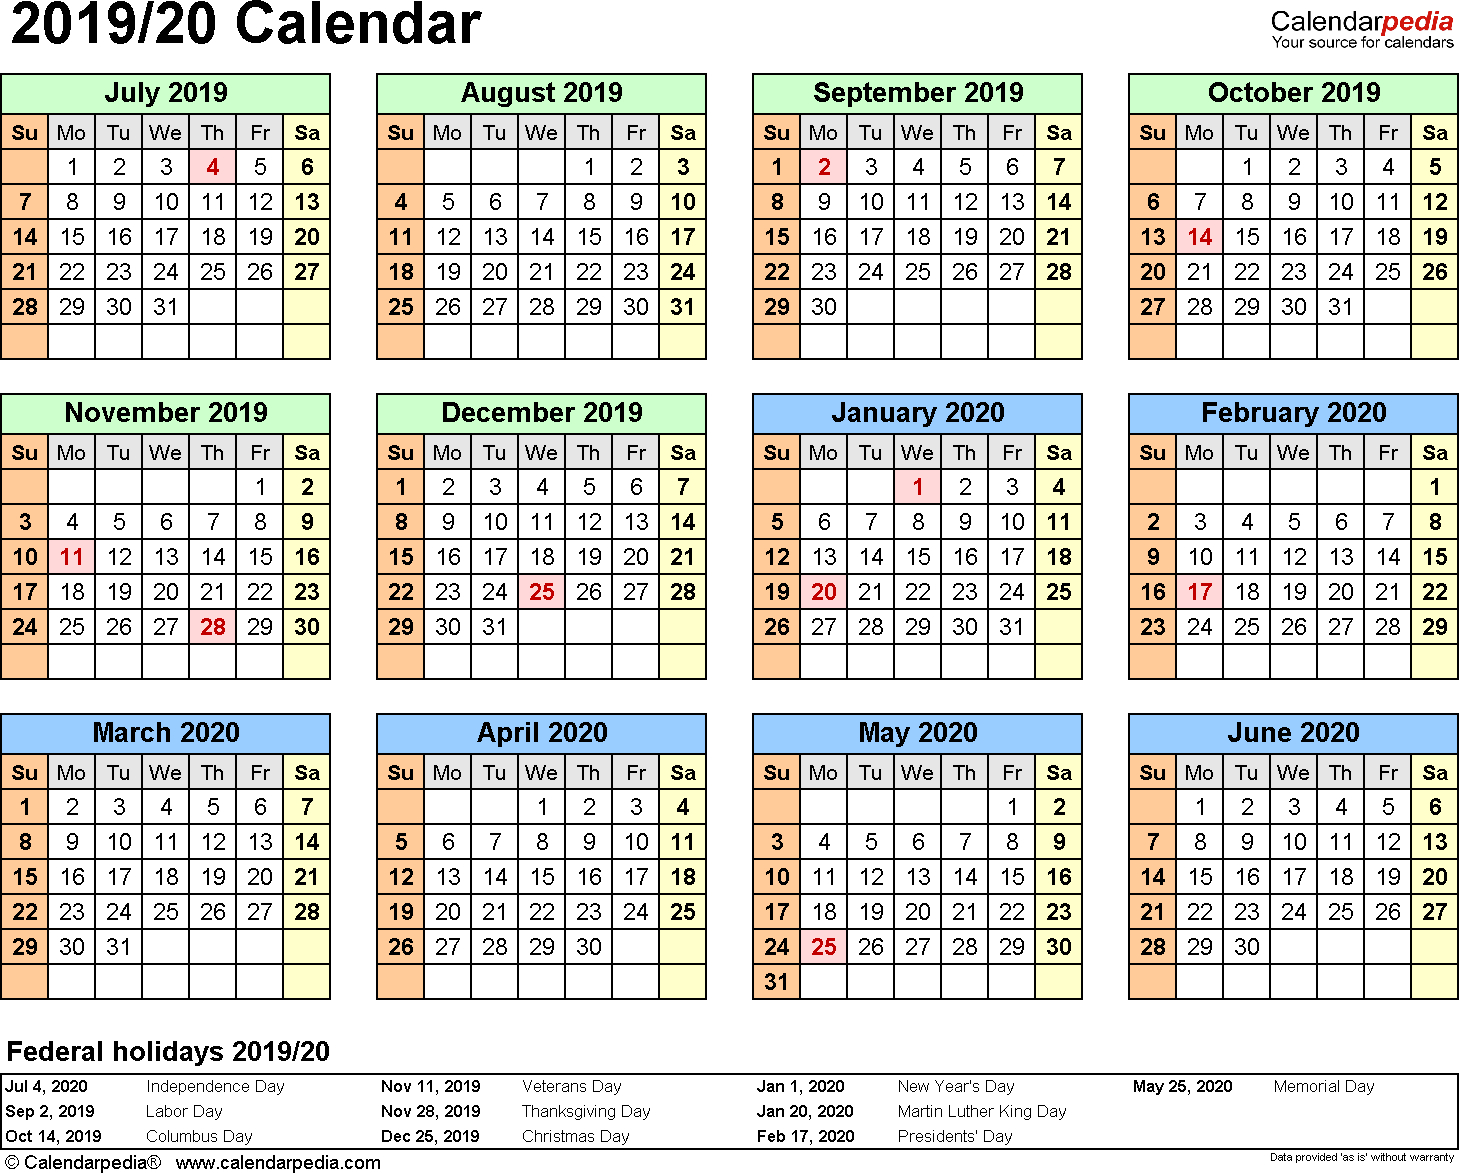 Split Year Calendar 2019/20 (July To June) - Word Templates in Calander Single Page Printable 2019 2020